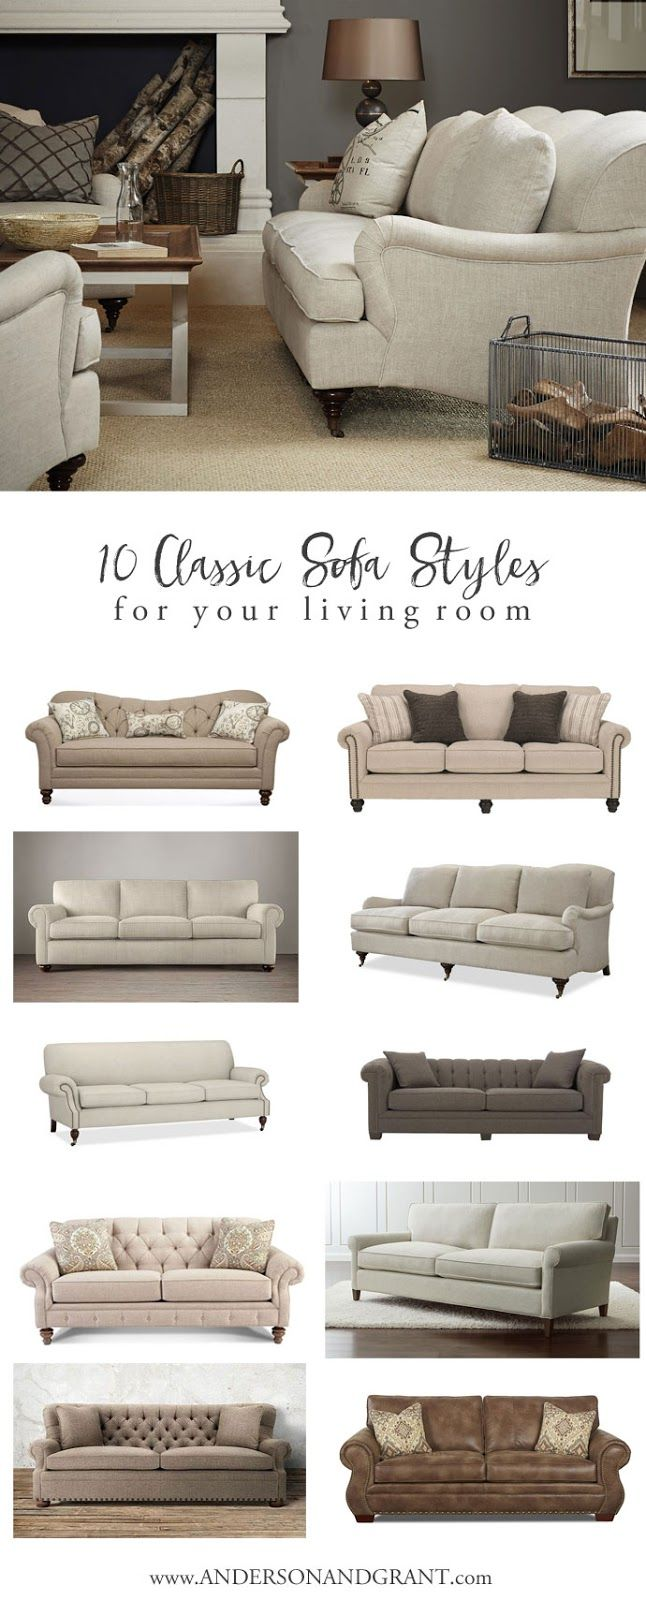 10 Classic Sofa Styles For Your Living Room Classic Sofa Classic Sofa Styles Living Room Decor On A Budget